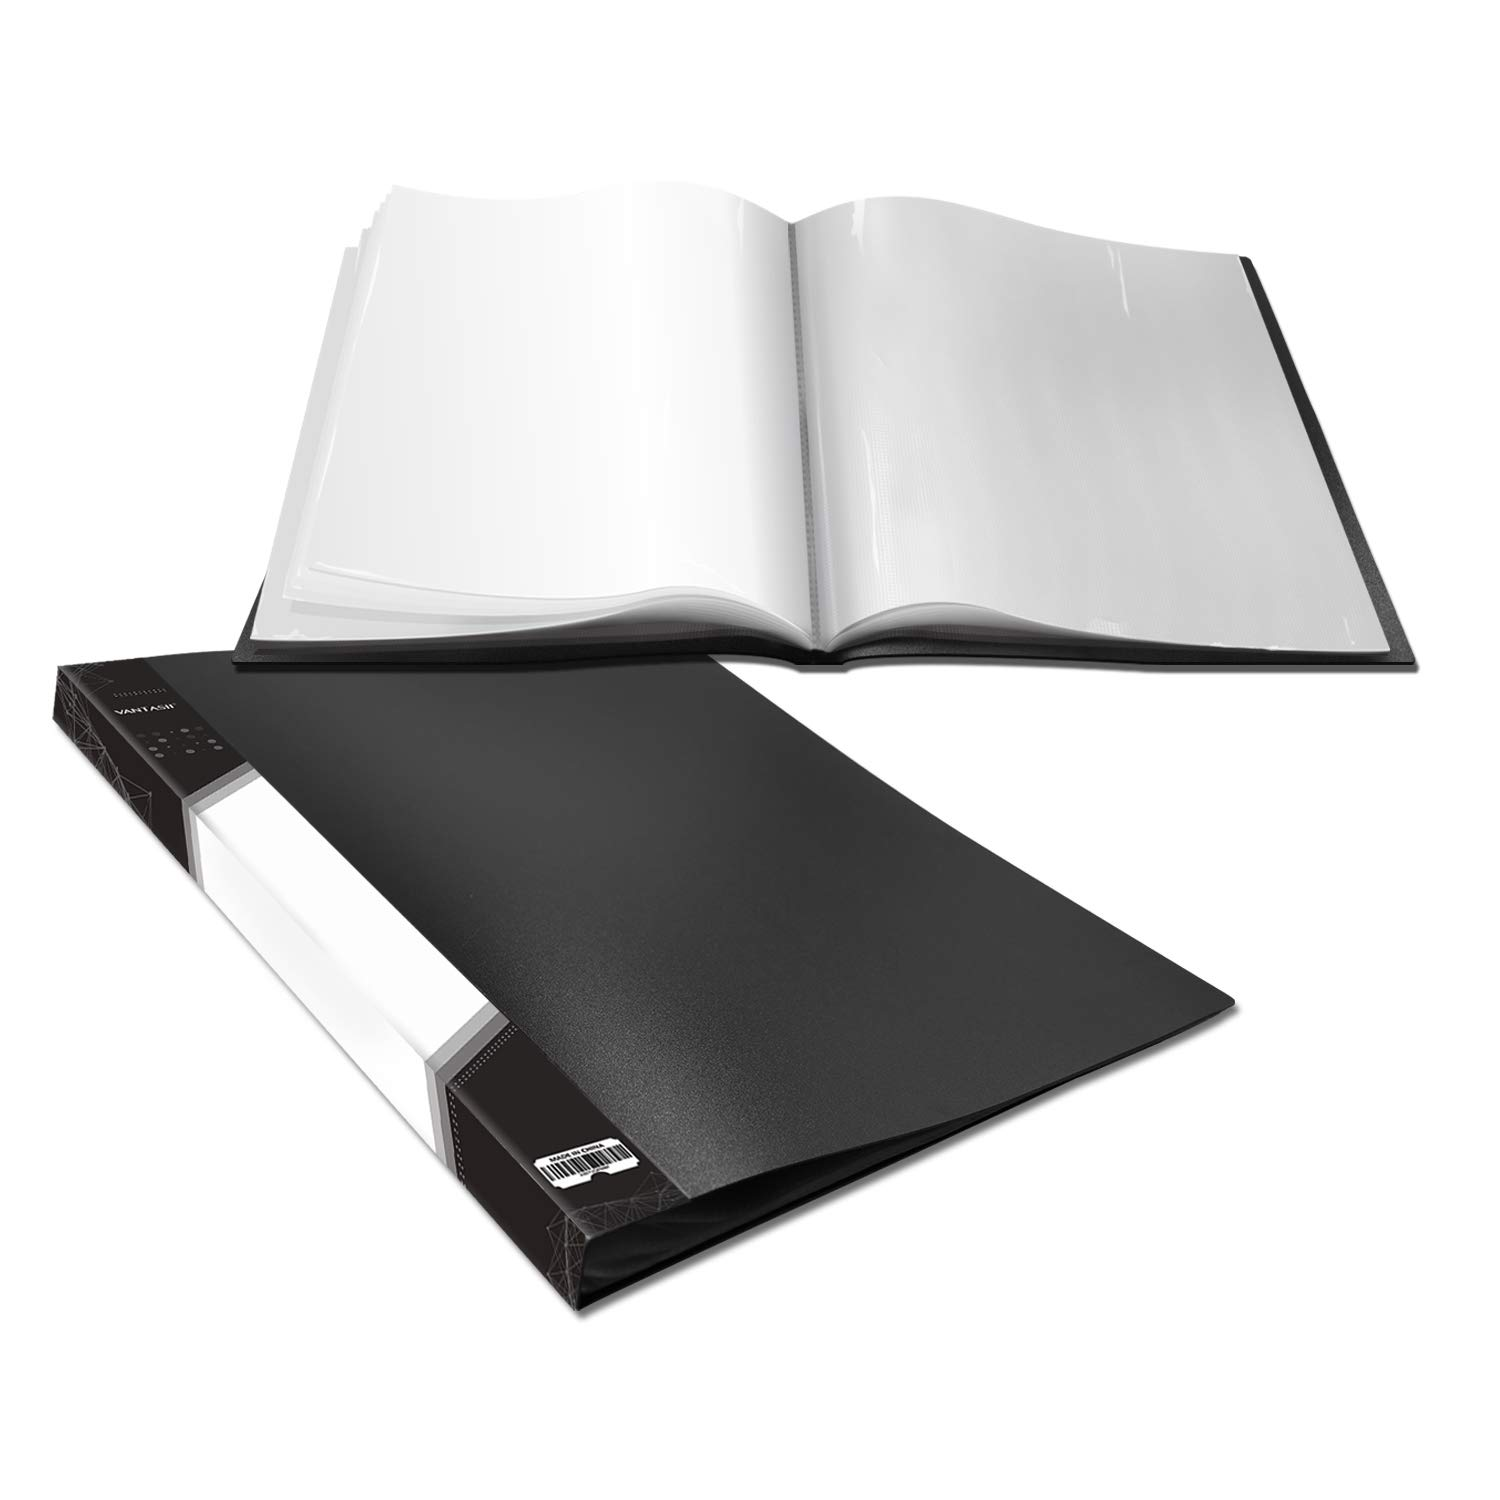 Presentation Book 40 Clear Pockets Sleeves Protectors Art Portfolio Clear Book for Artwork, Report Sheet, Letter (17x13inch) by Vantasii